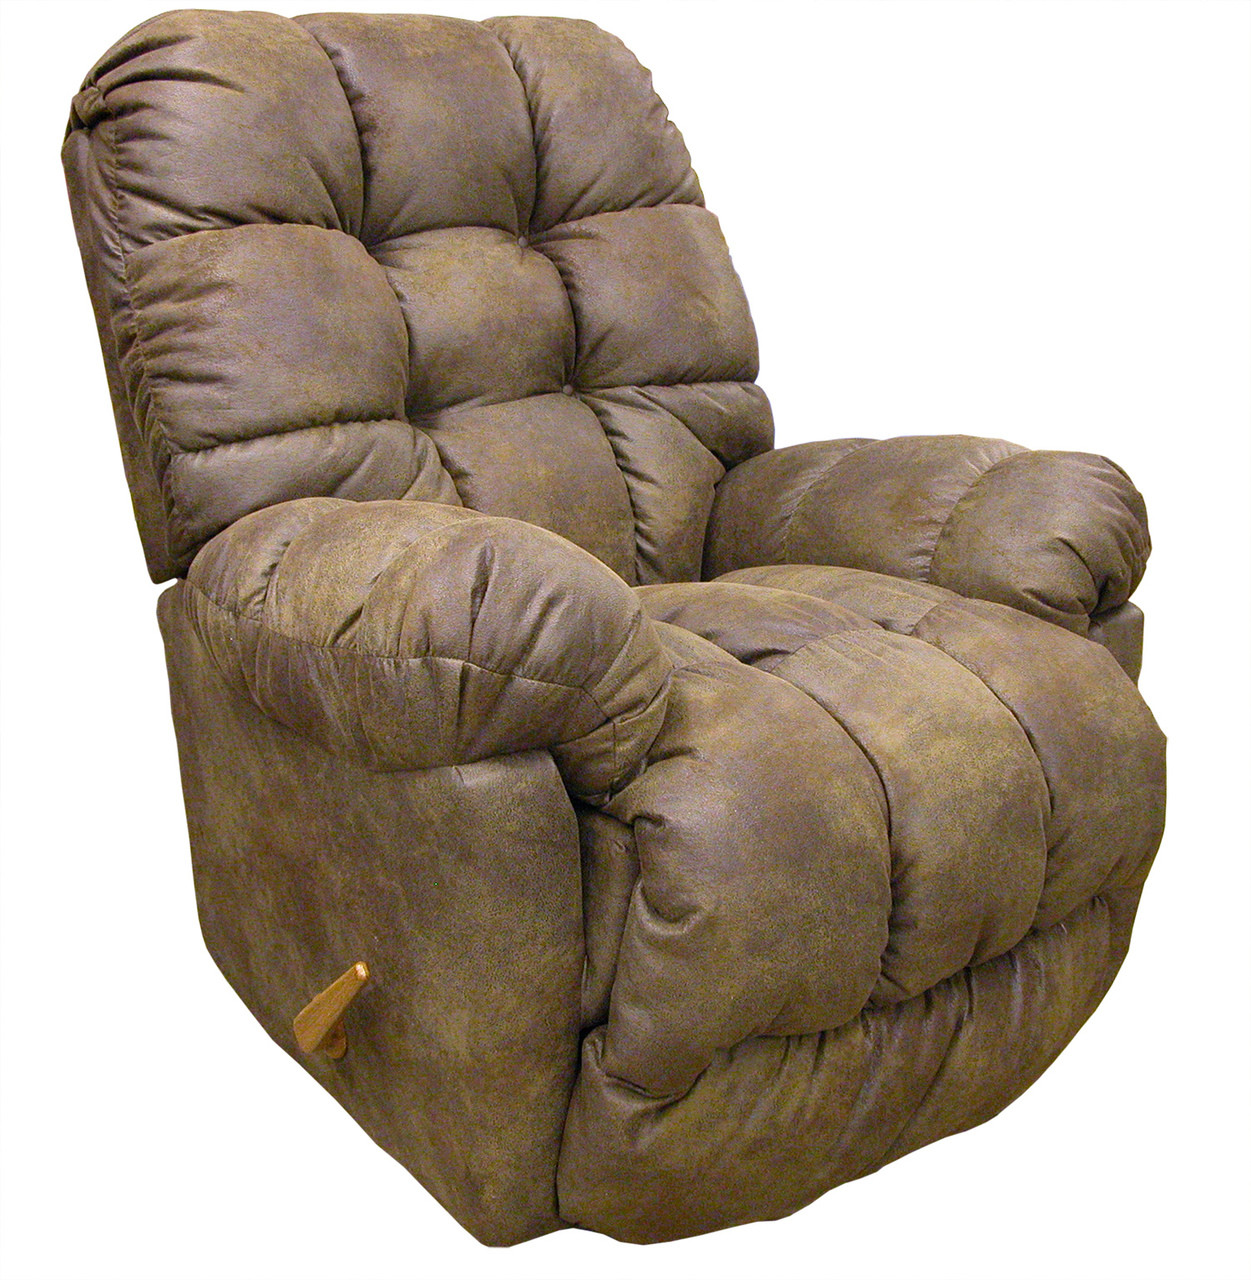 The Brosmer Rocker Recliner Sold At Rose Brothers Furniture Serving Wilmington And Jacksonville